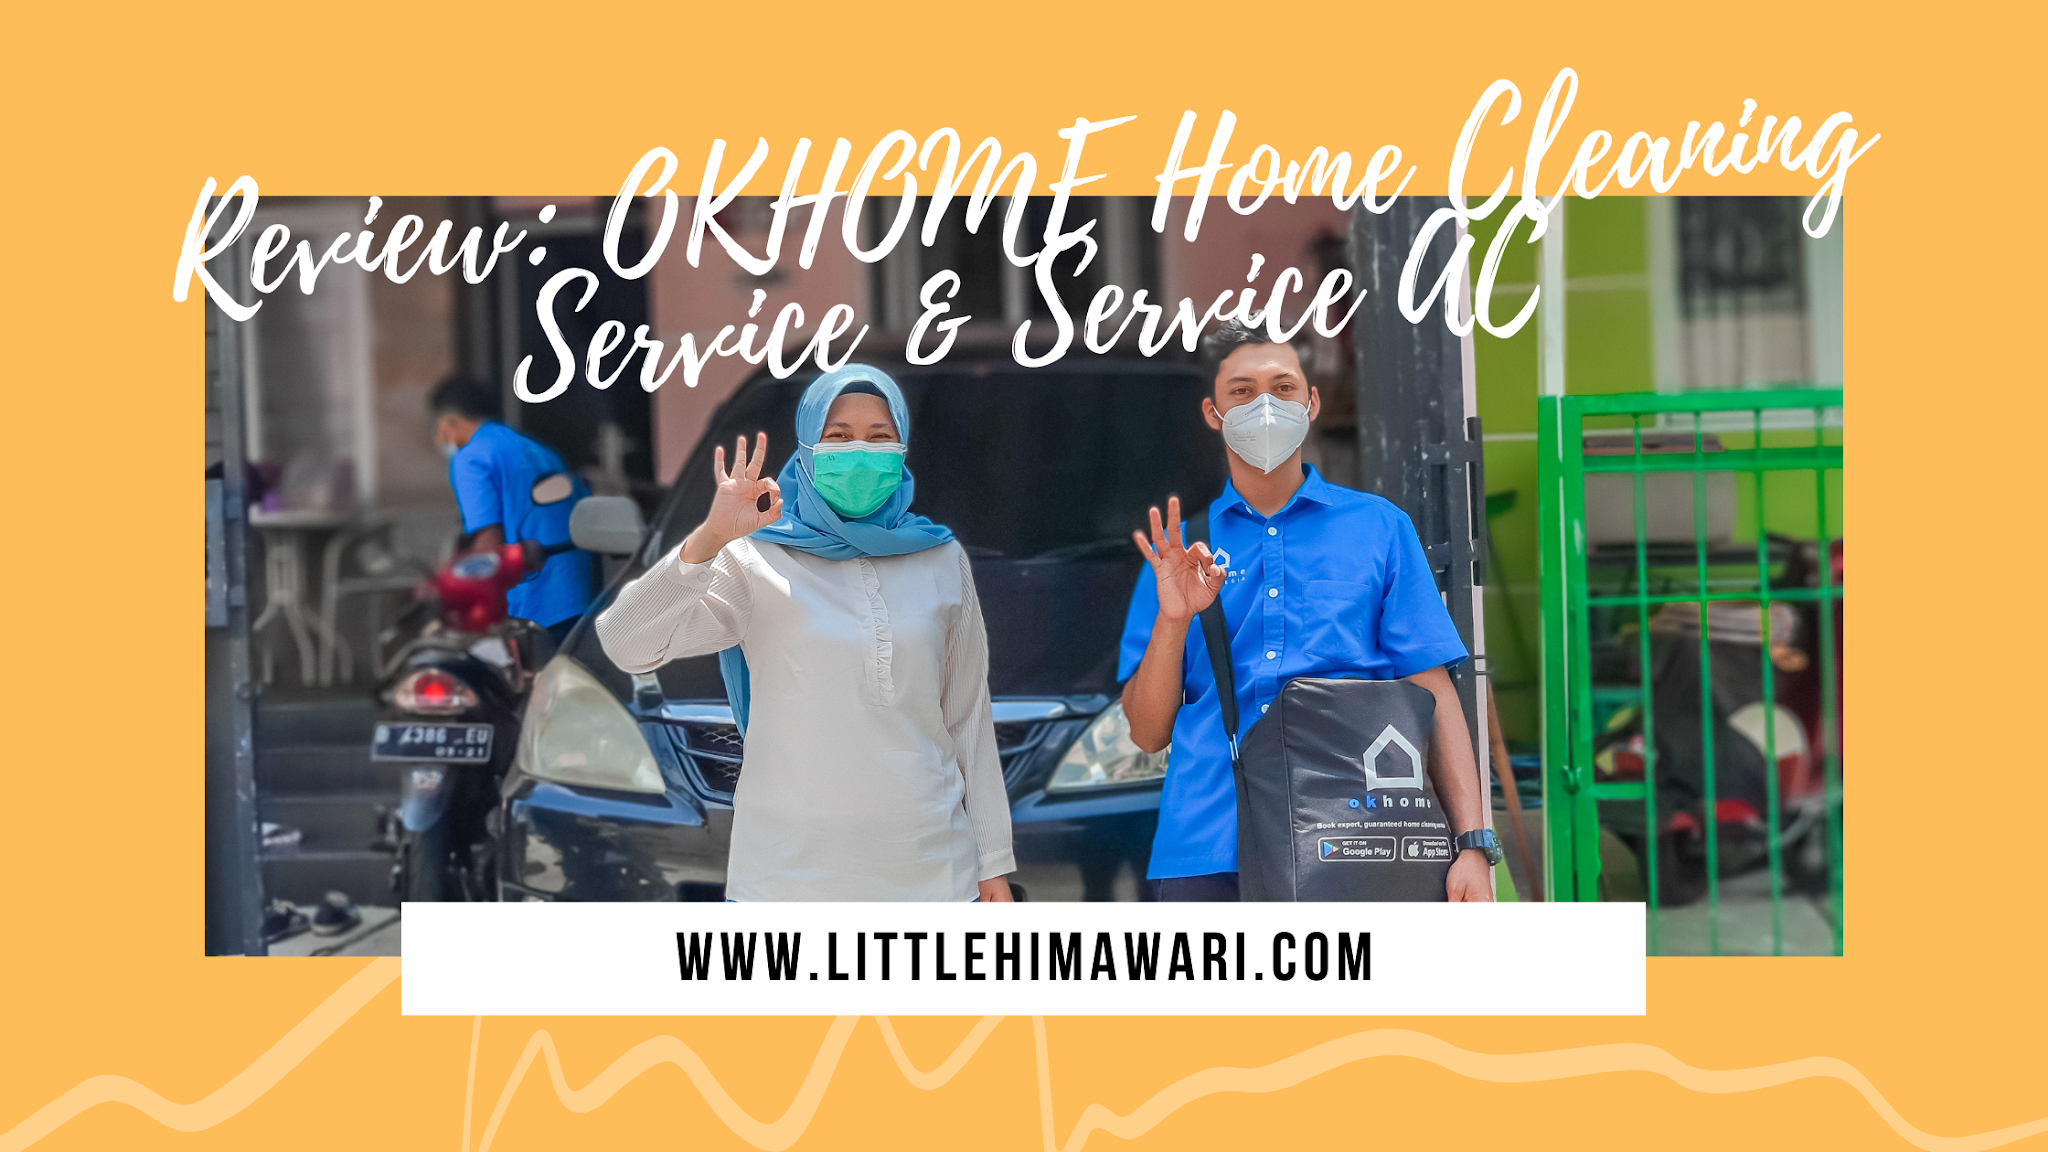 okhome home cleaning service